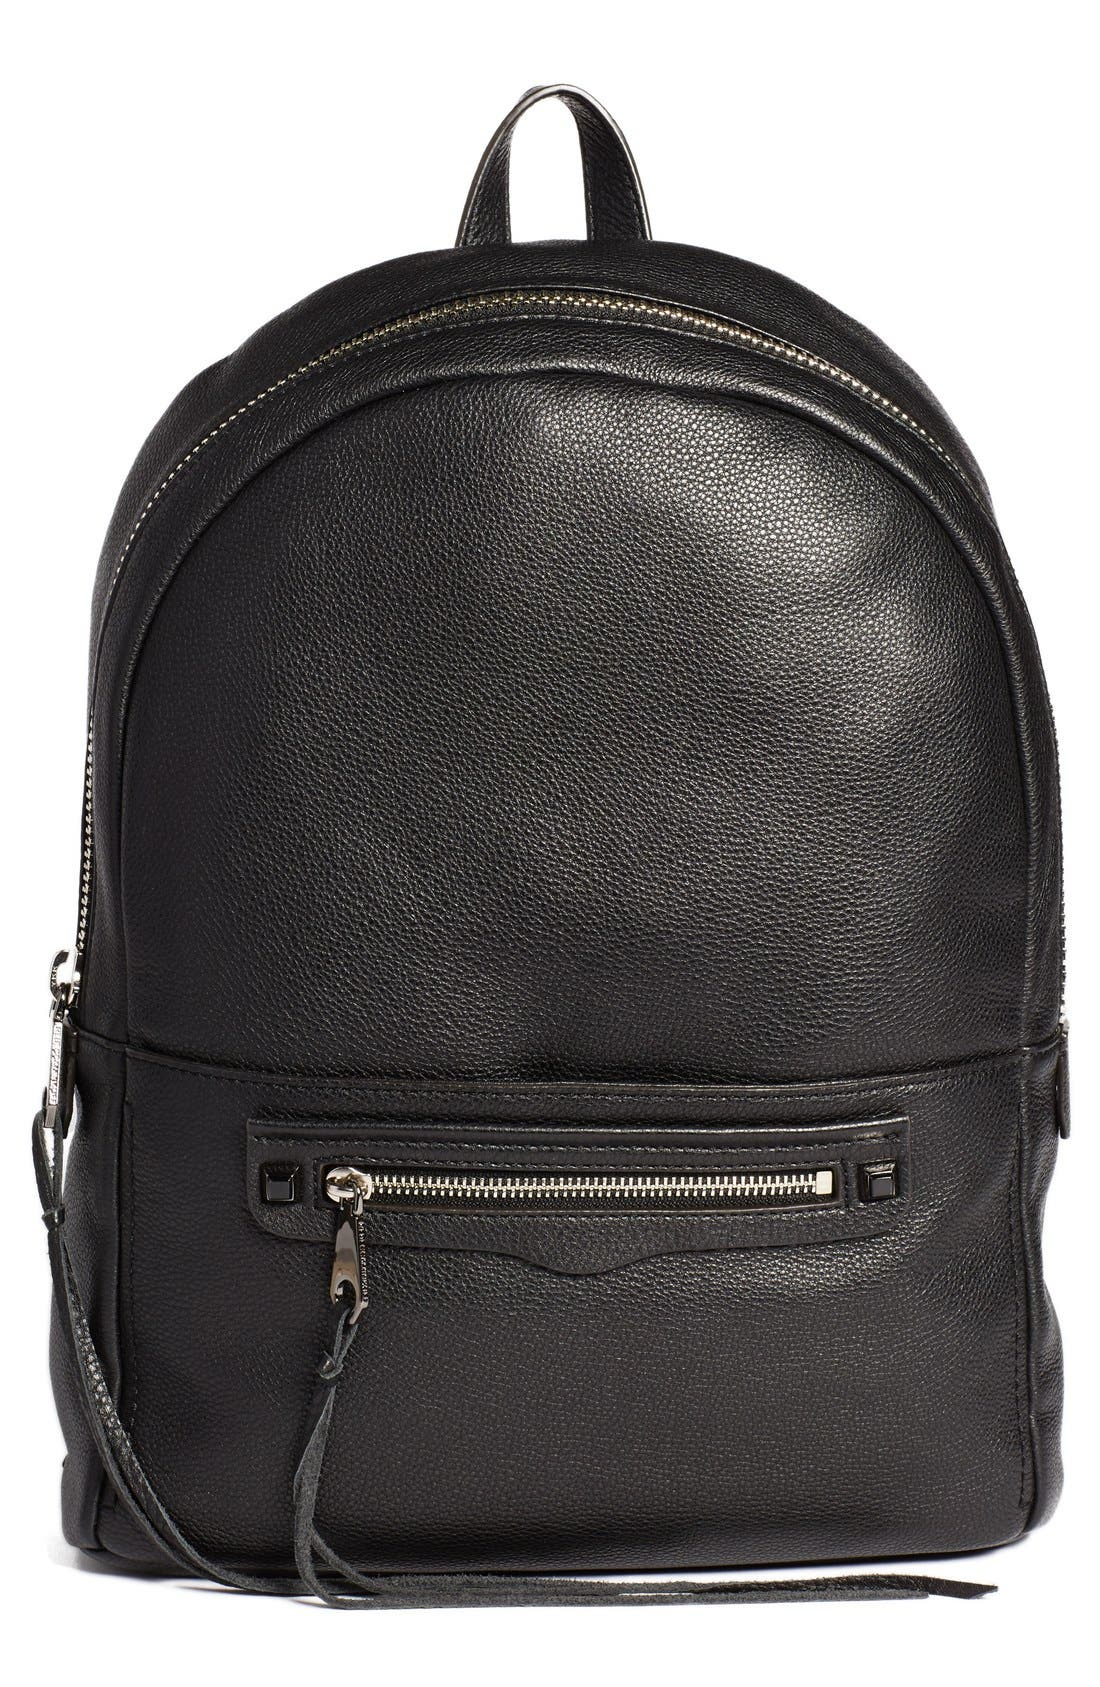 Alternate Image 1 Selected - Rebecca Minkoff 'Always On Regan' Leather Backpack